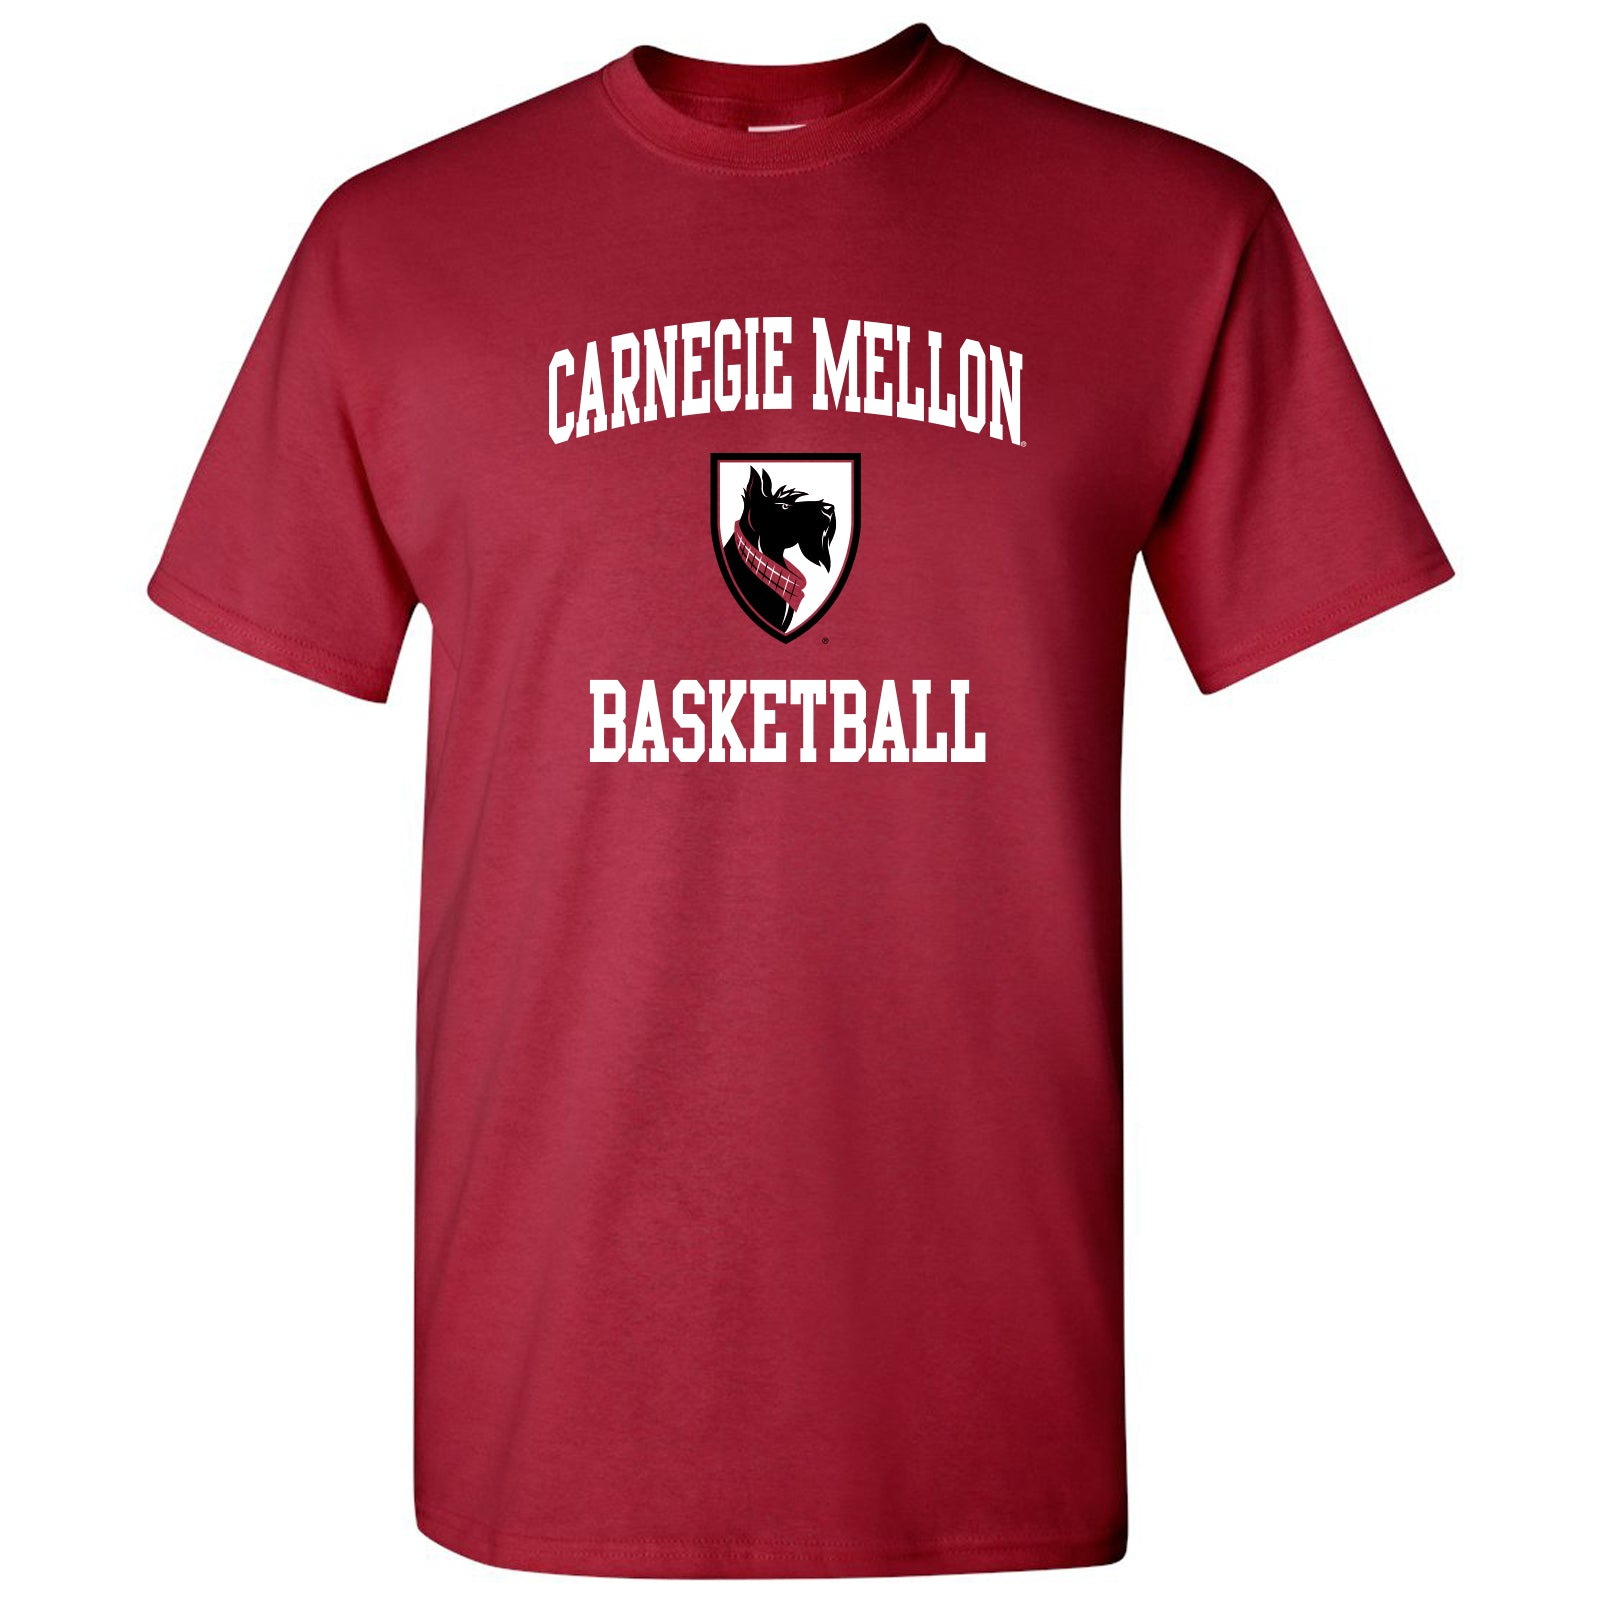 new products 97218 1fa27 Carnegie Mellon University Tartans Arch Logo Basketball Short Sleeve T  Shirt - Cardinal